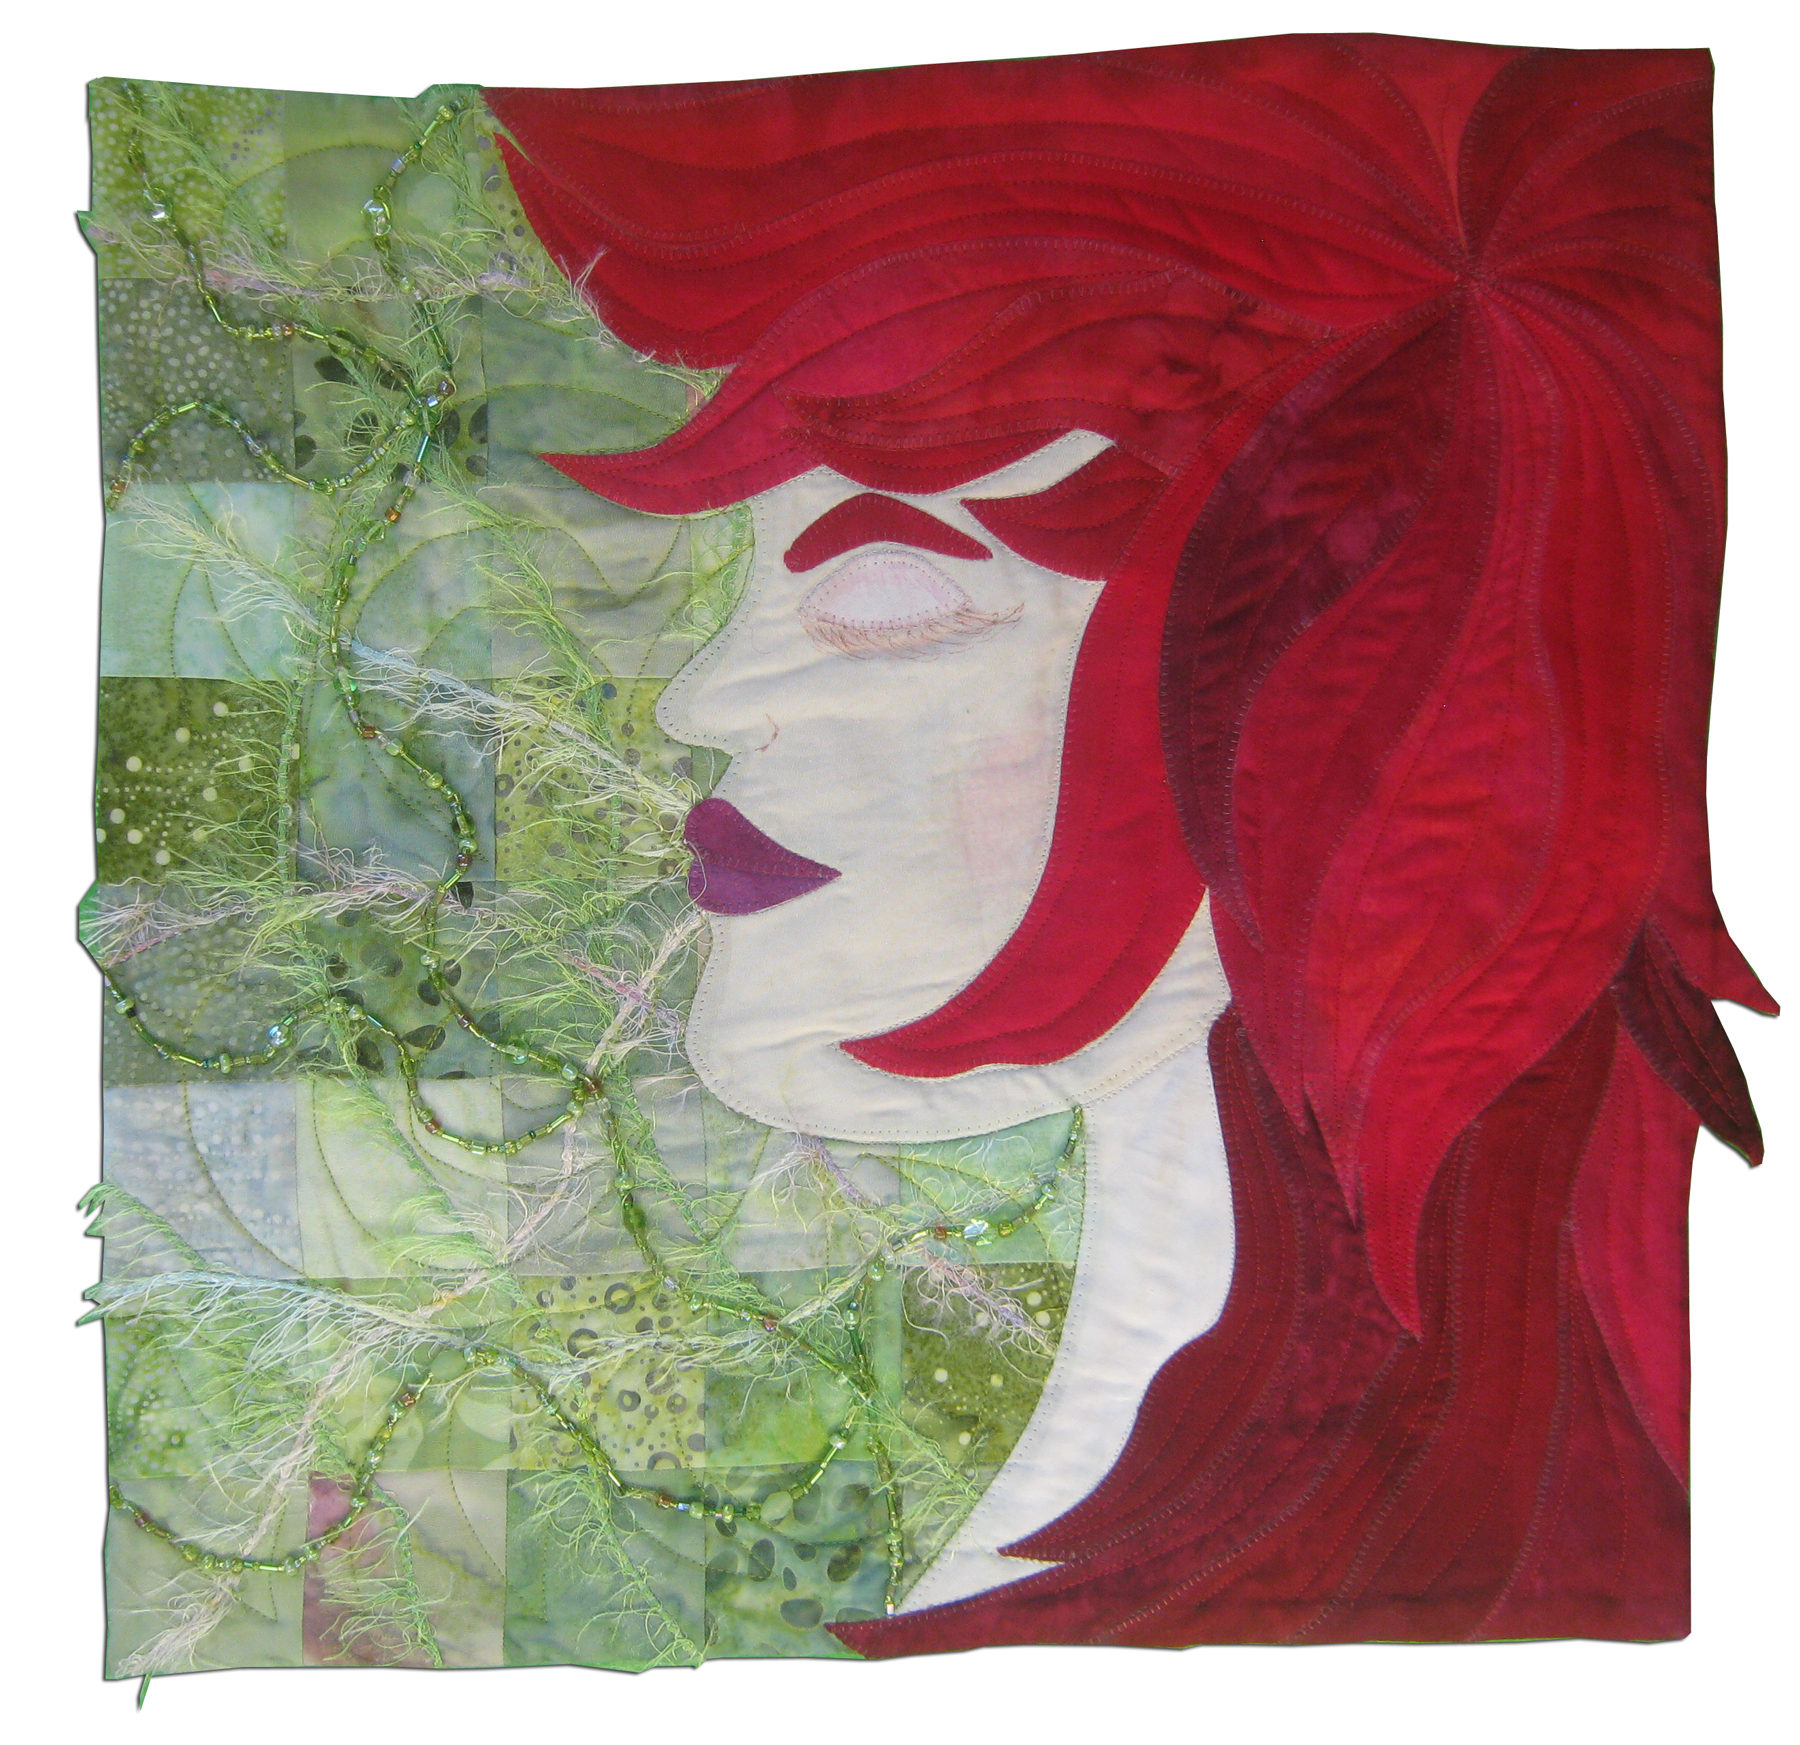 Whisper to the Wind by Cheri Rabourn, 2011